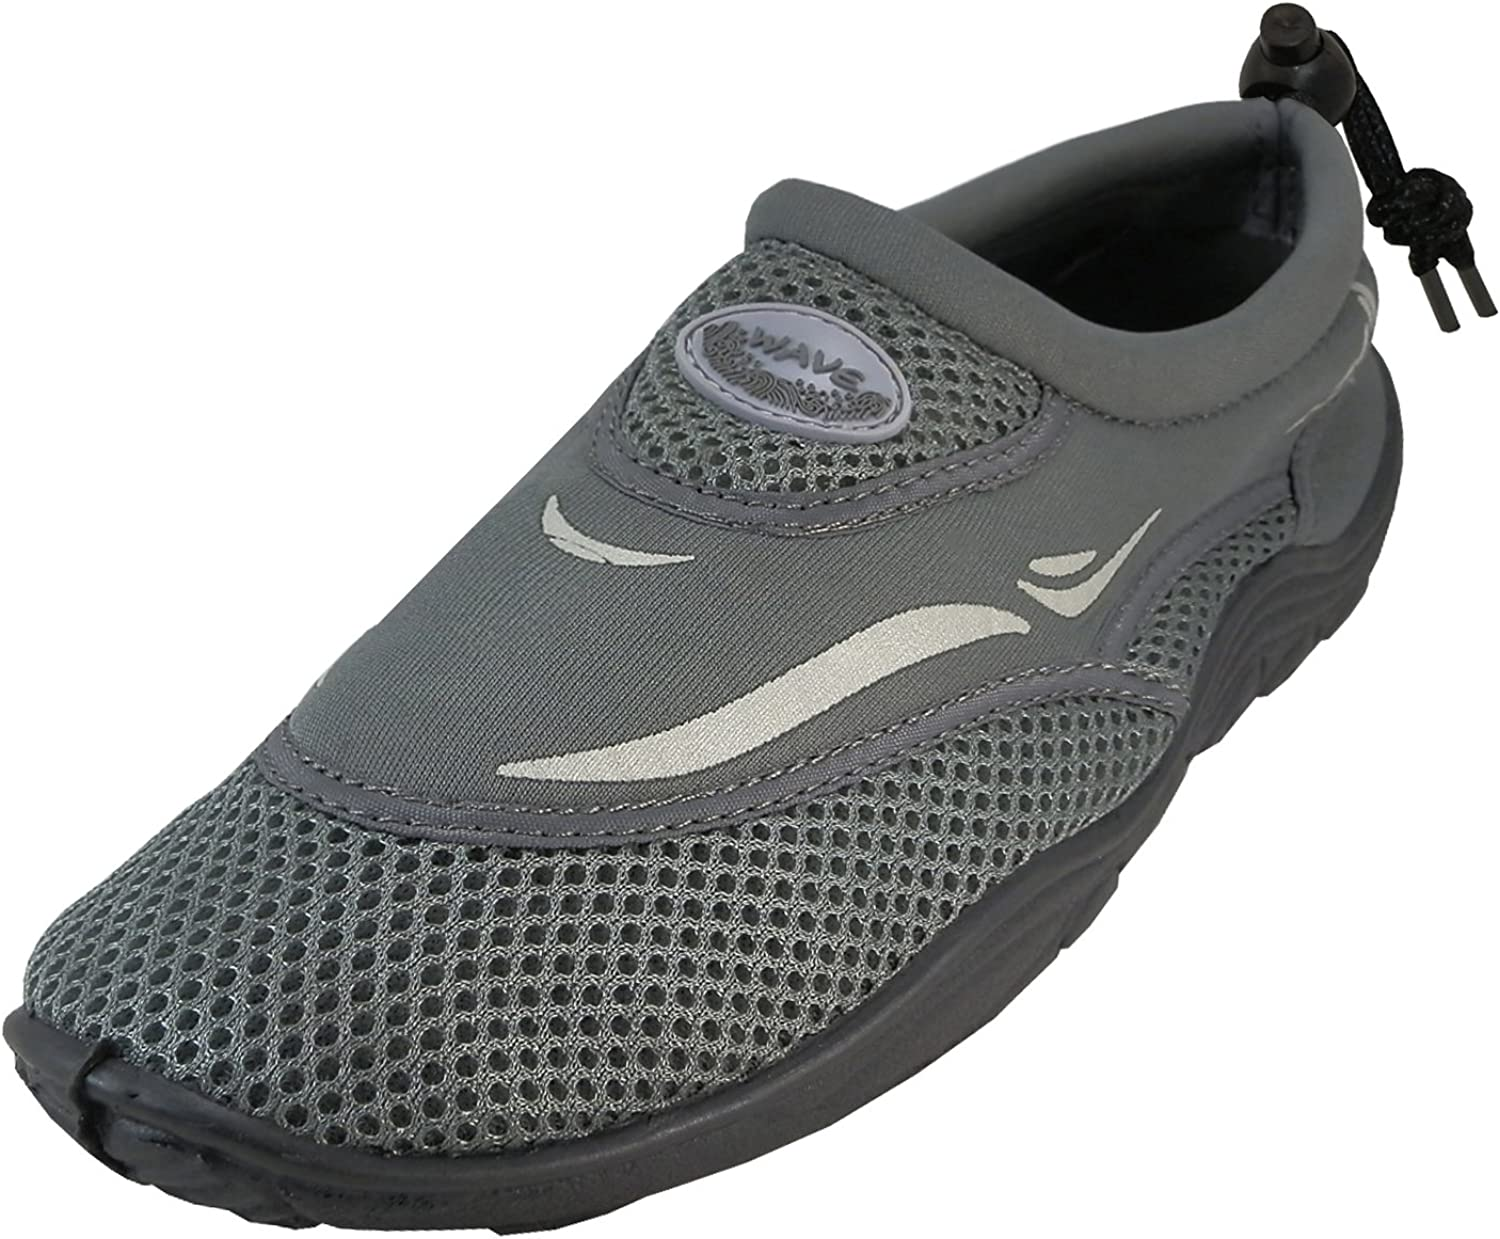 Cambridge Select Men's Slip-On Closed Toe Mesh Quick Dry Drawstring Water shoes